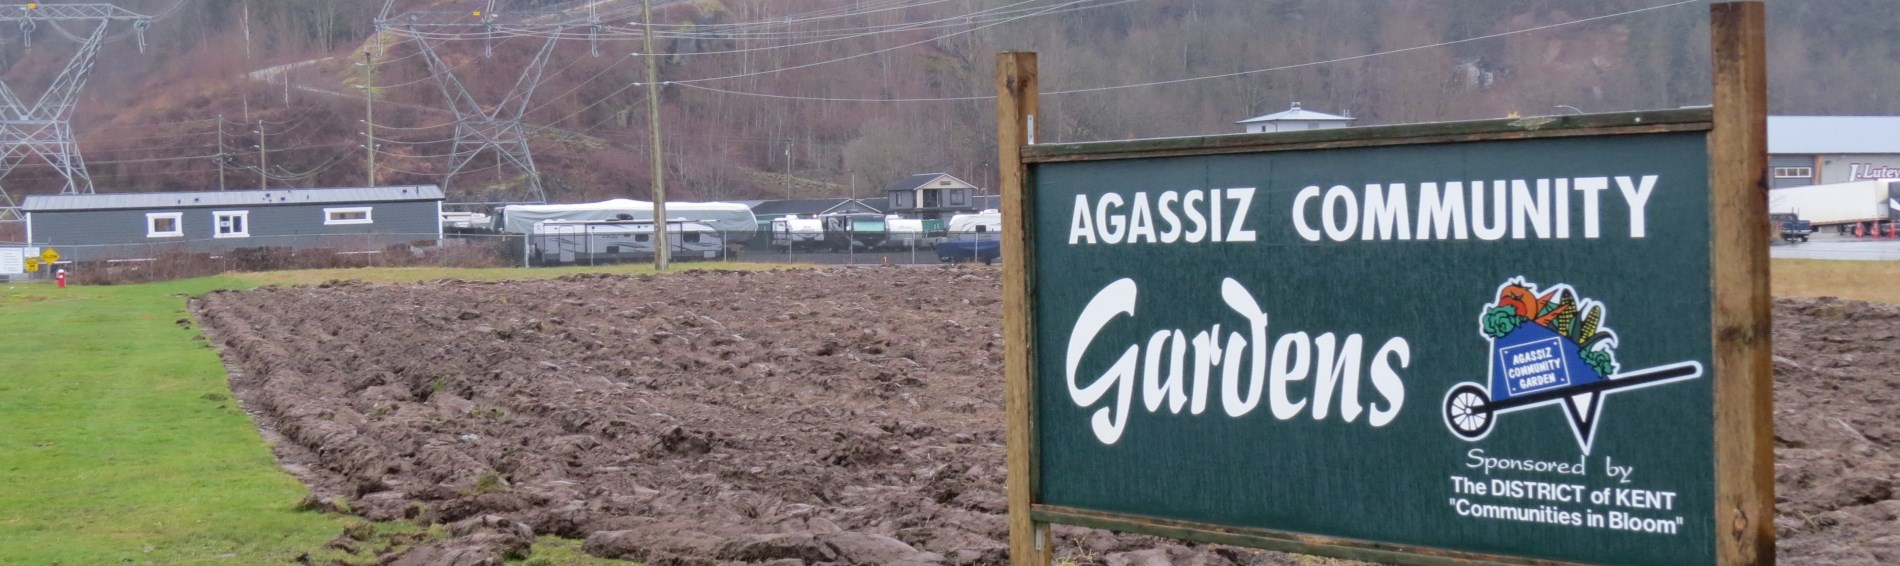 Community gardens with sign